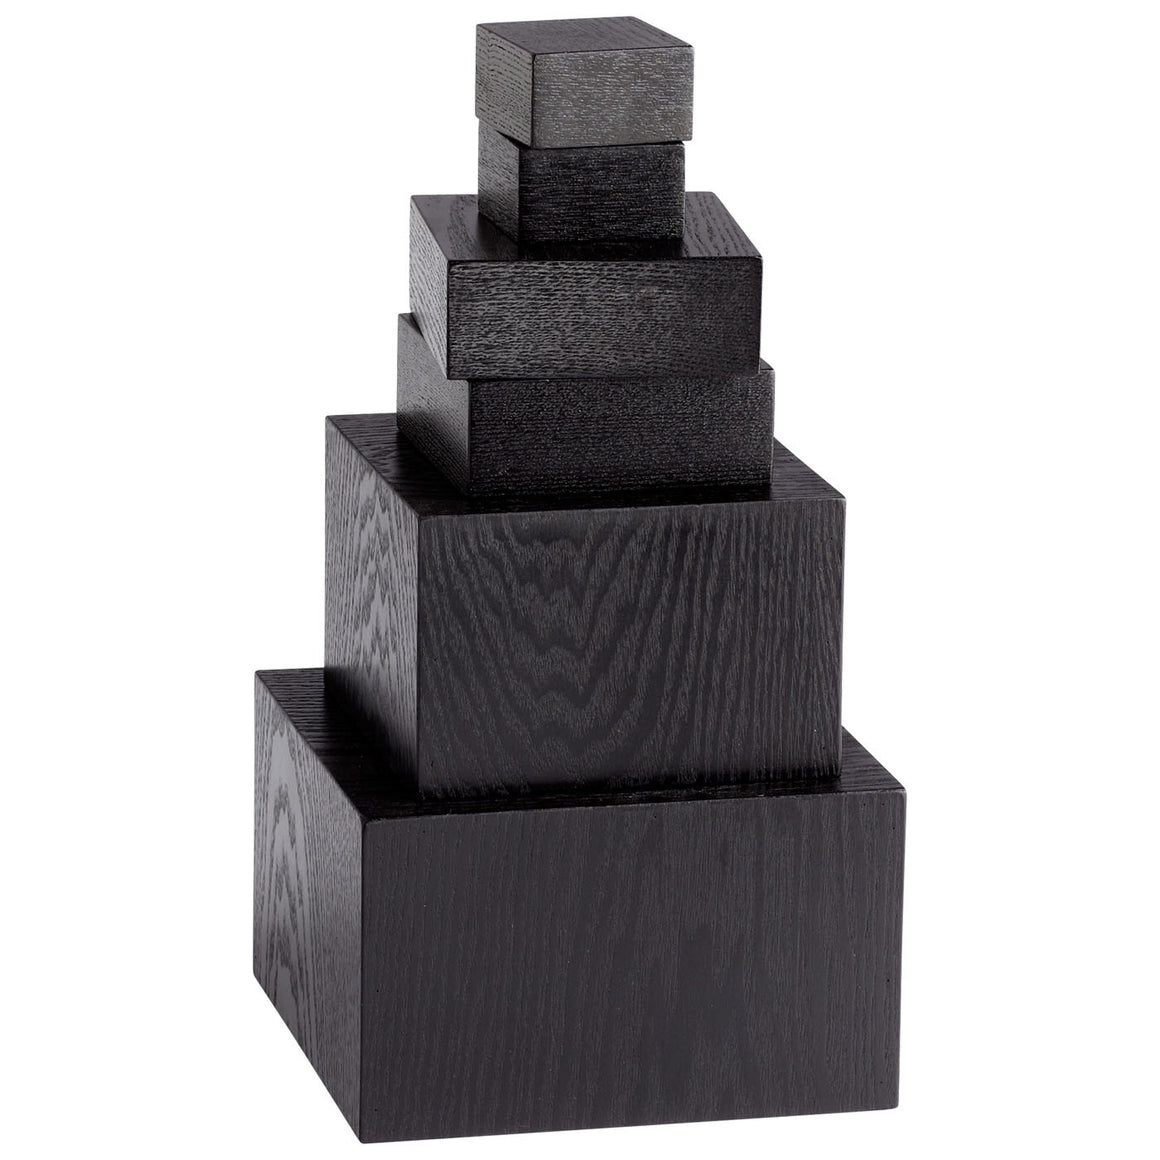 Art Pedestals 05483 by Cyan Design